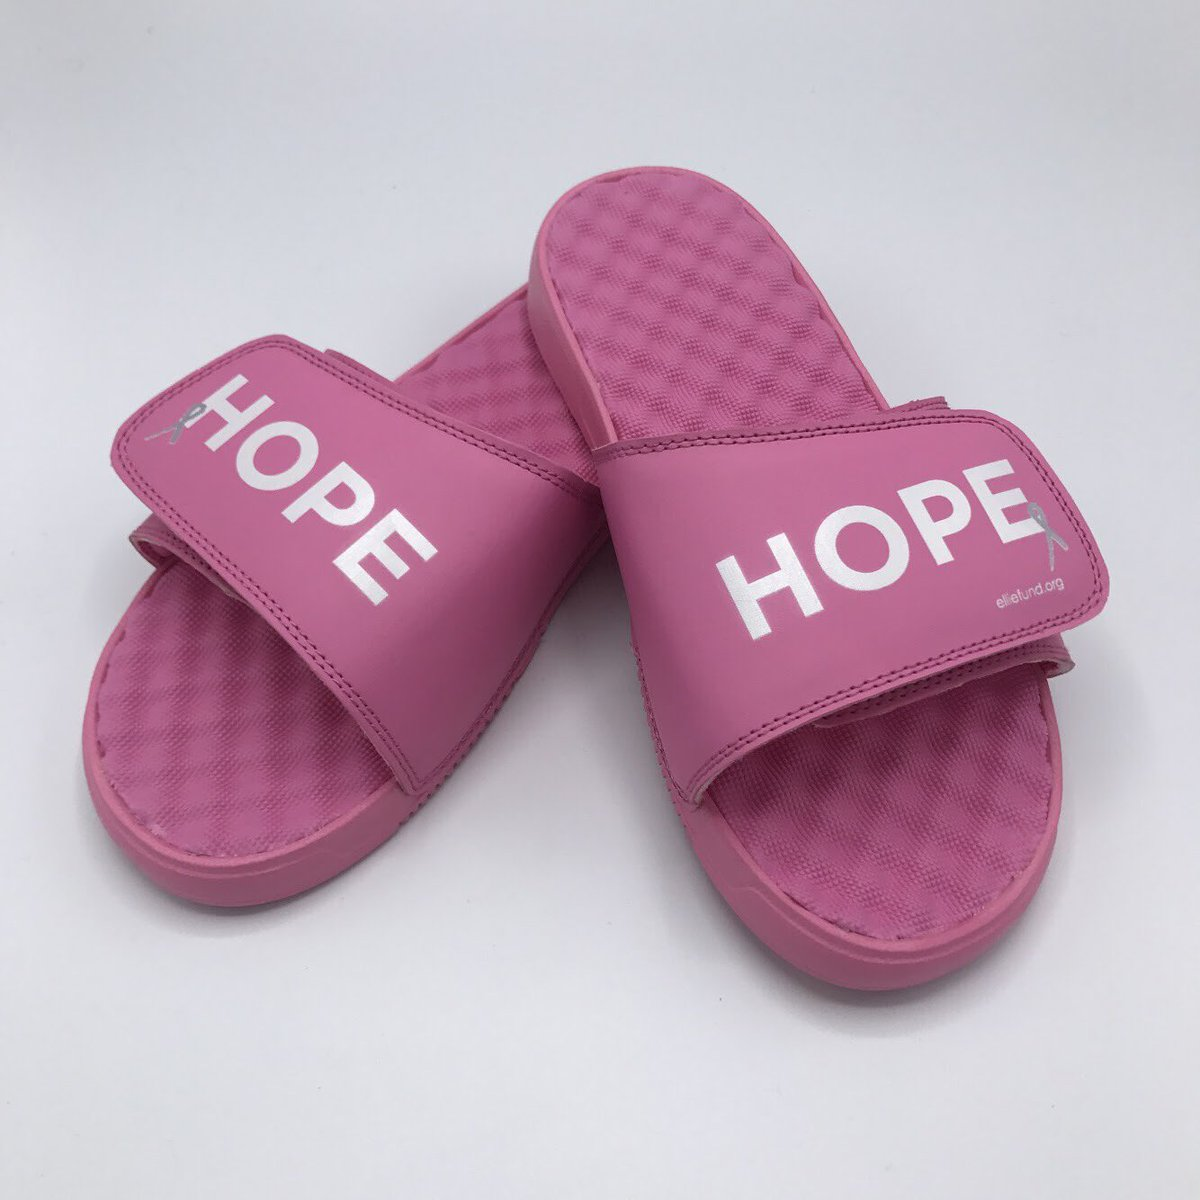 islide on twitter pink slides available now proud to partner with